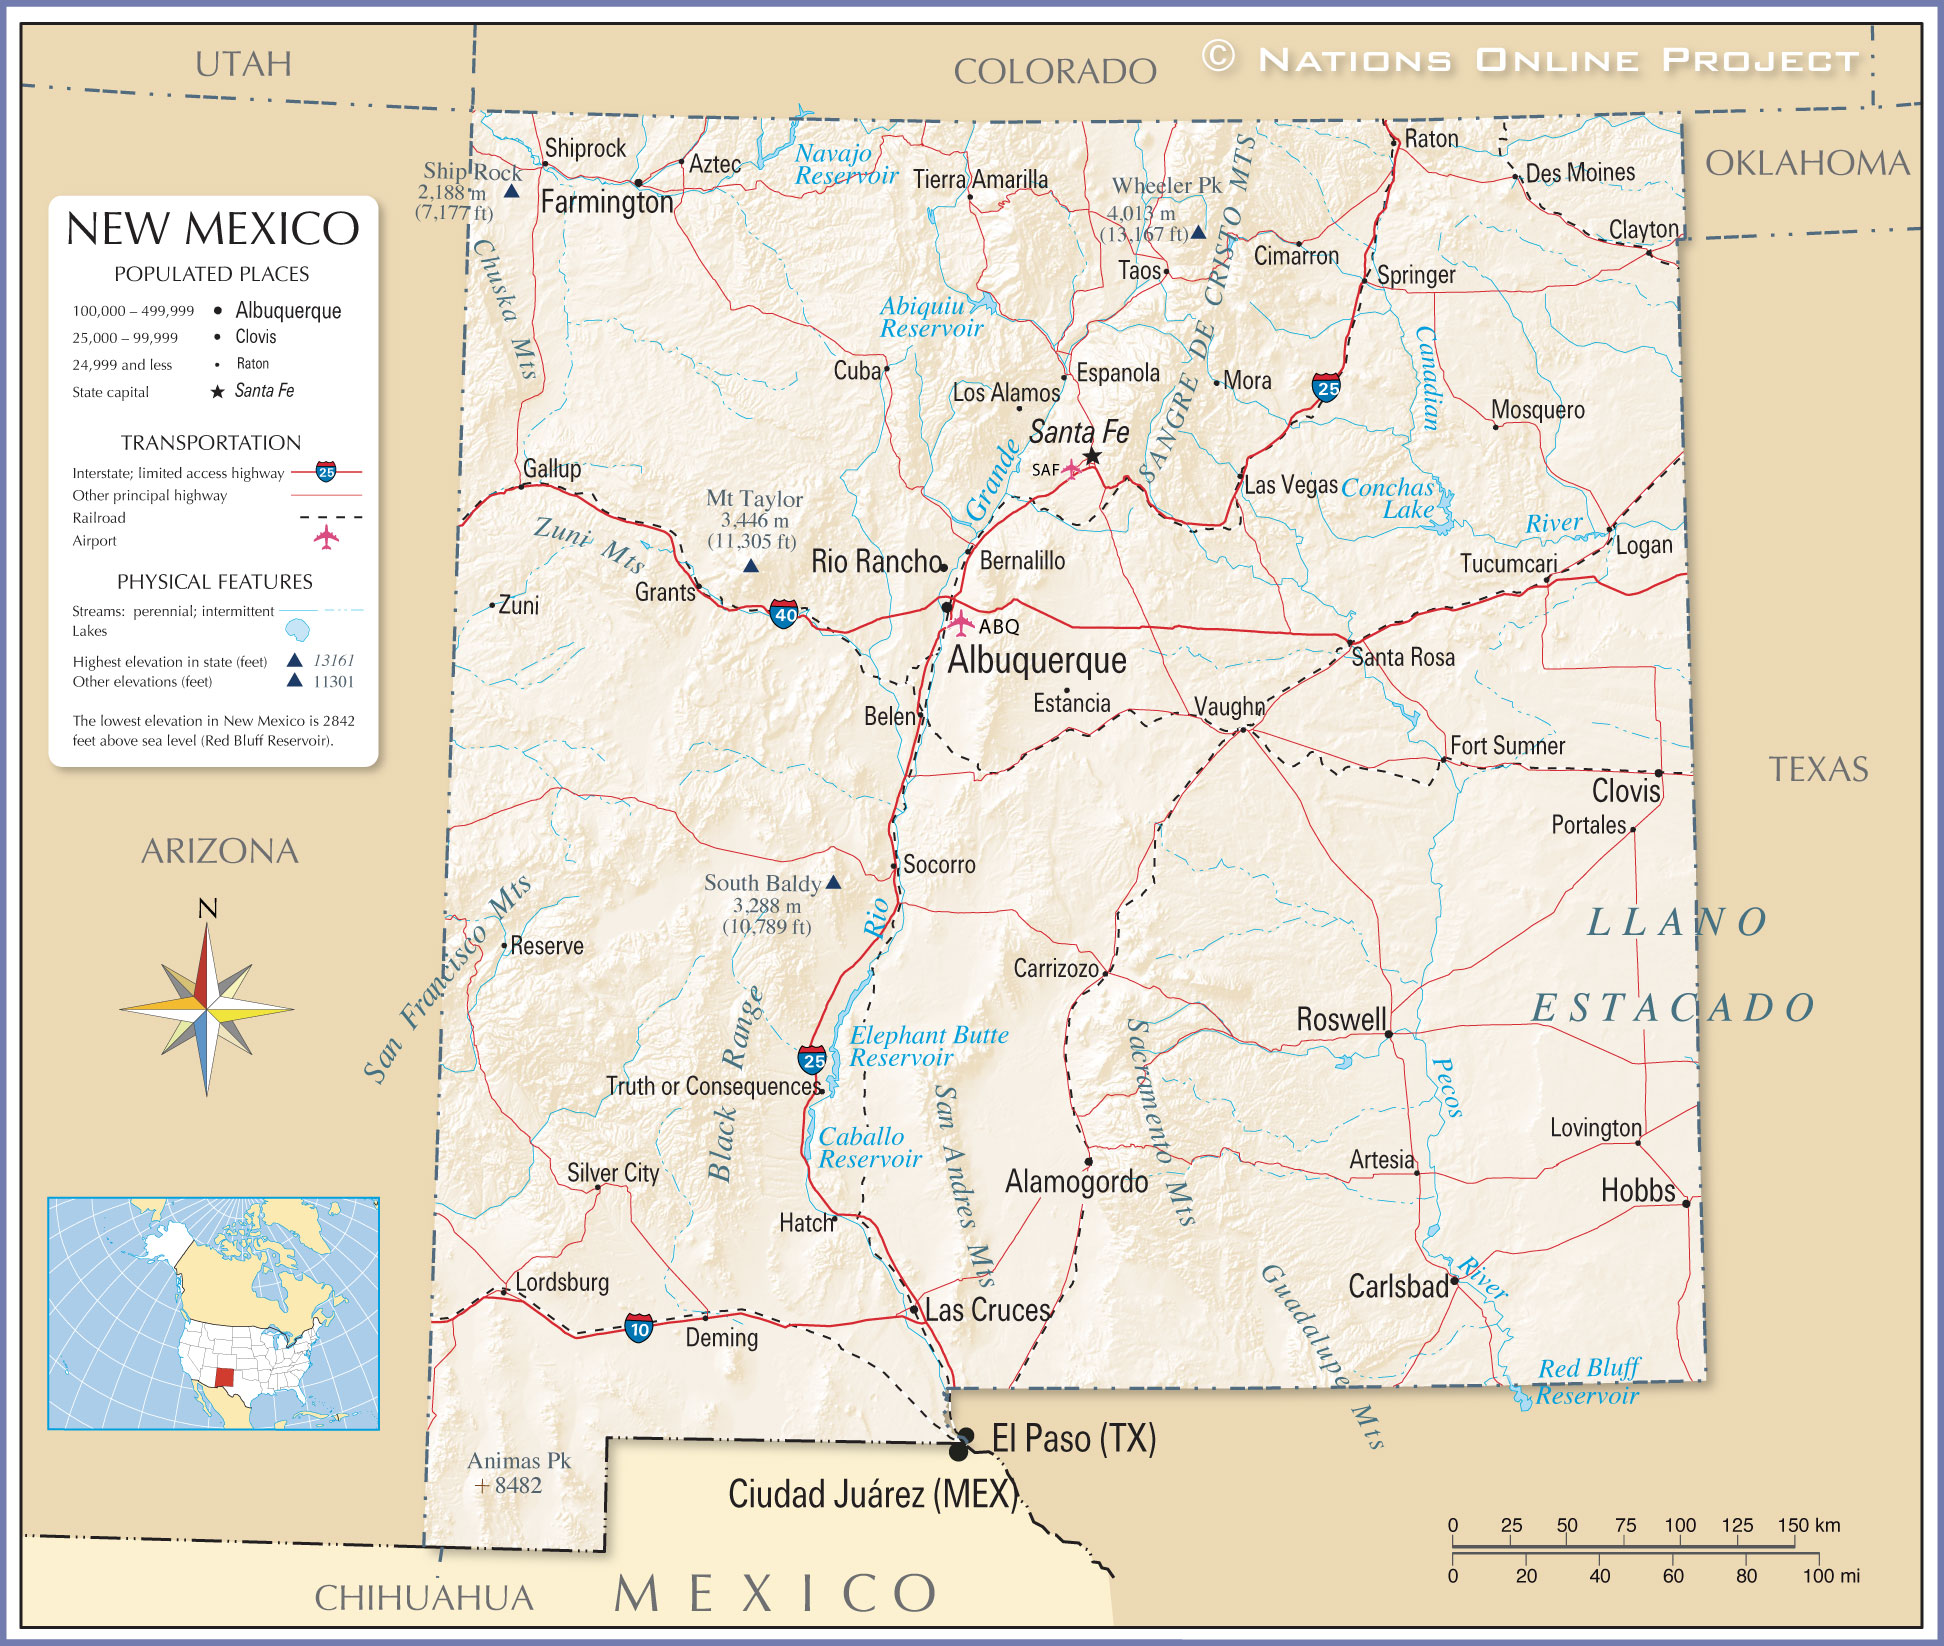 Reference Map of New Mexico USA Nations Online Project